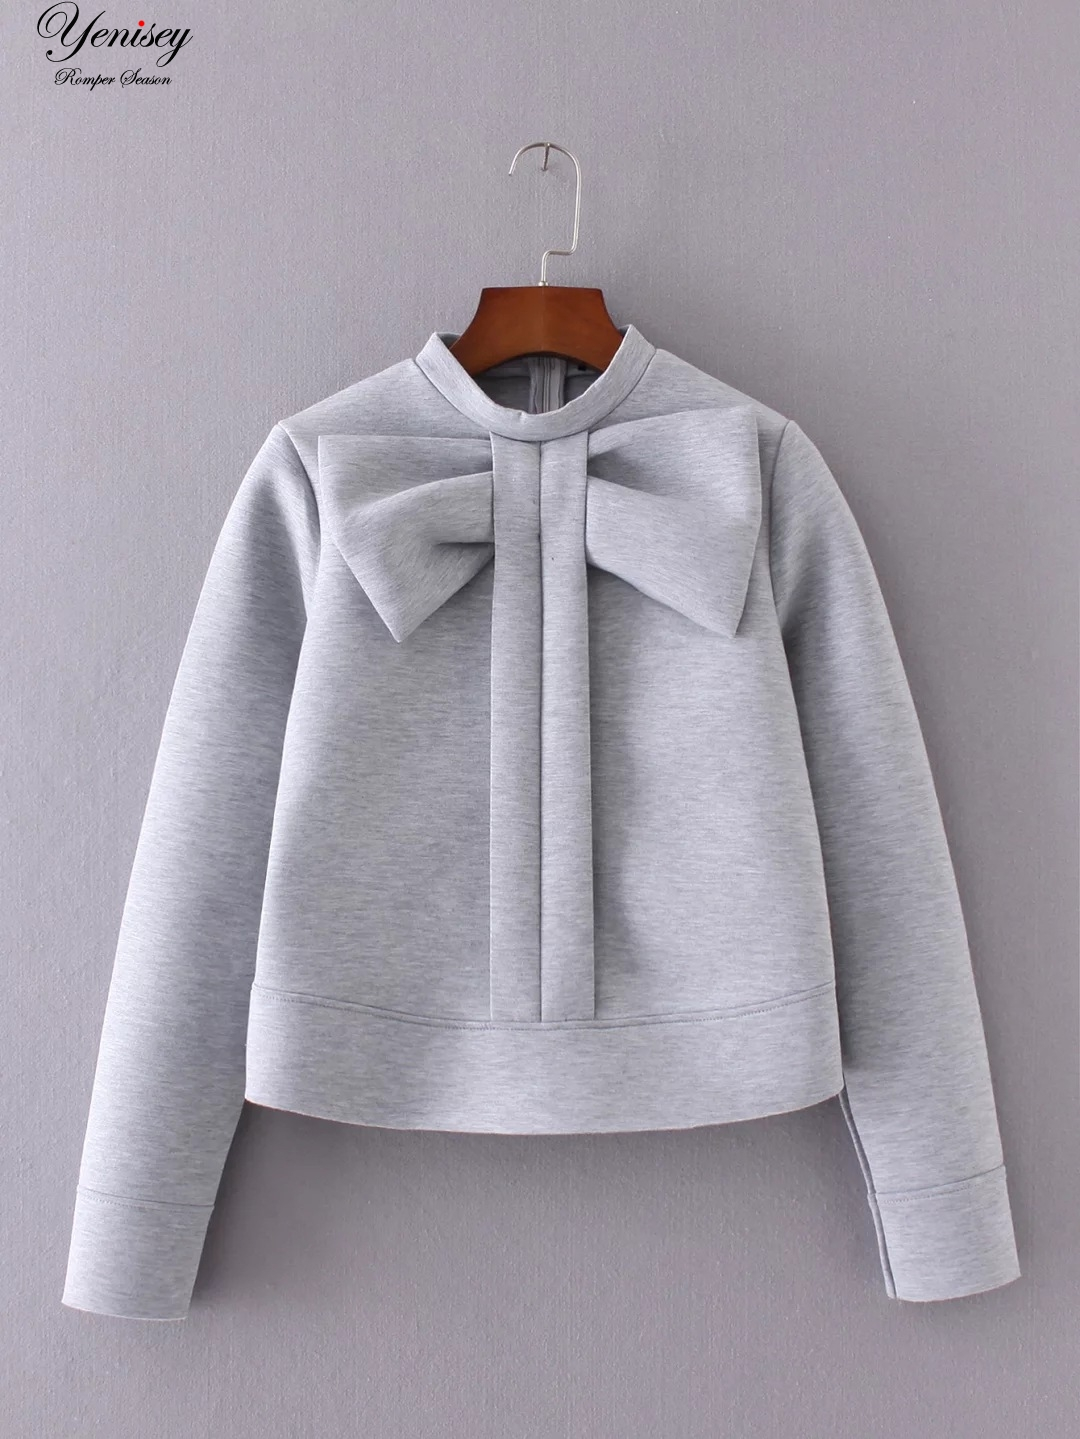 Open-Minded Yd-50-8251 And The Wind Fall Fashion New Bow Collar Sleeve Head Space Cotton Casual Latest Fashion Hoodies & Sweatshirts